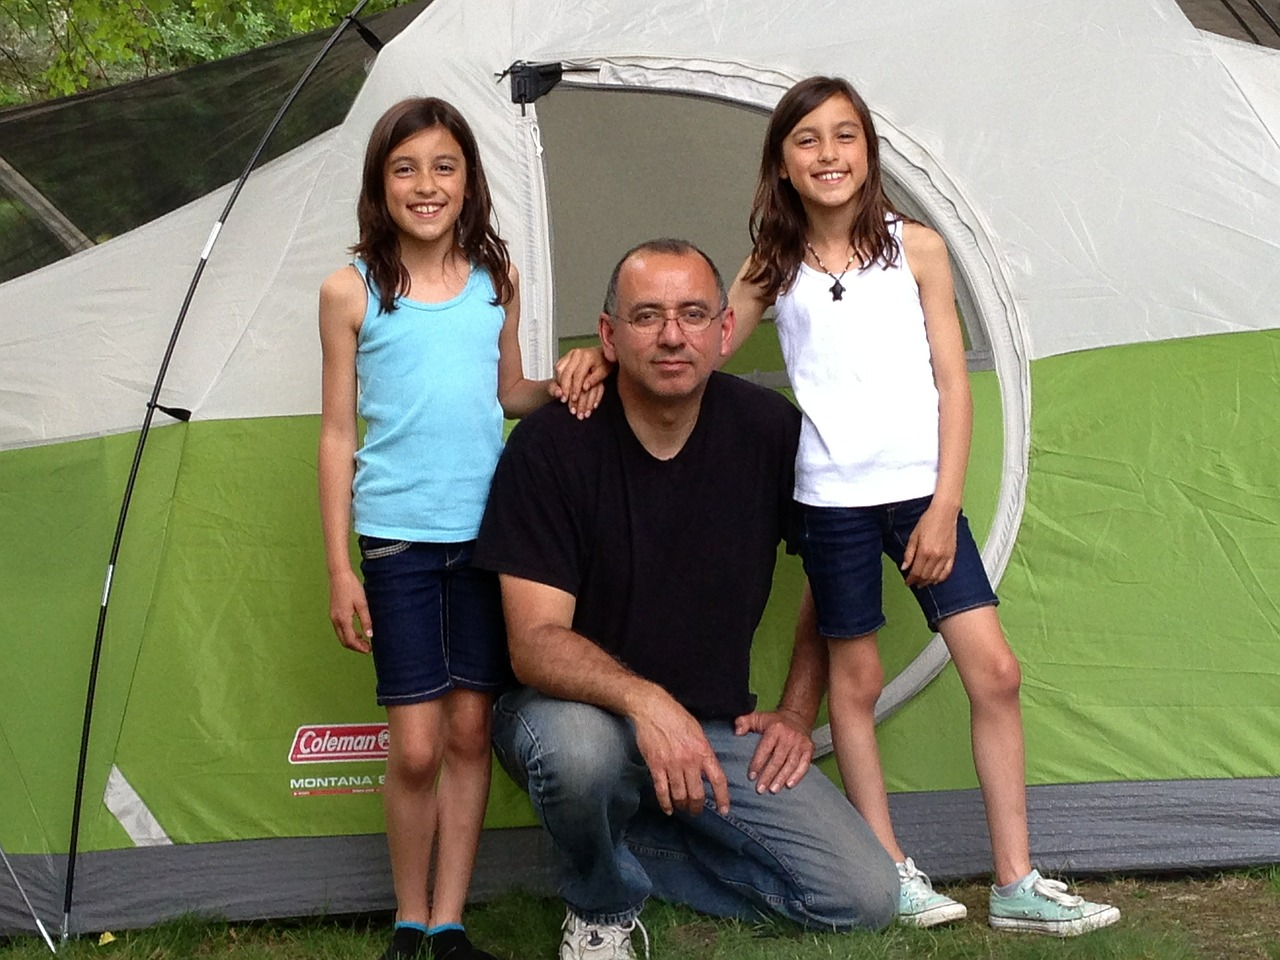 The best 8-person tent for large families will need room dividers for privacy